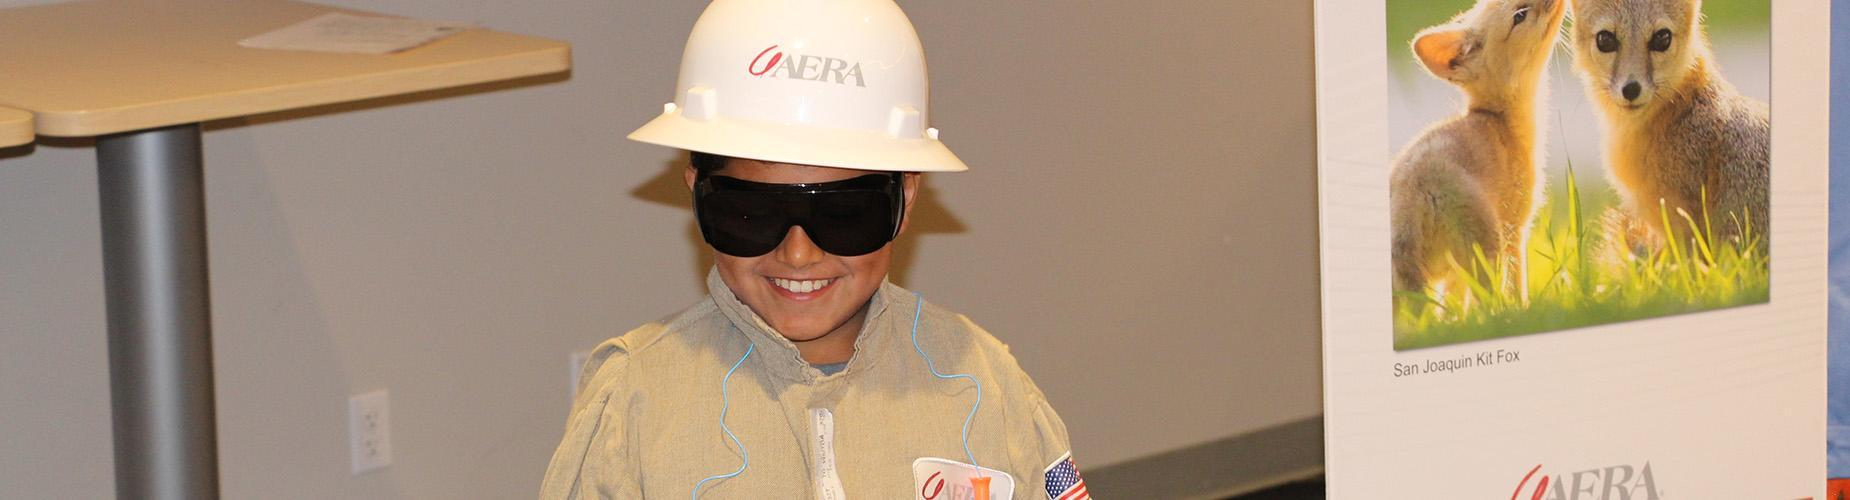 Child wearing a hard hat